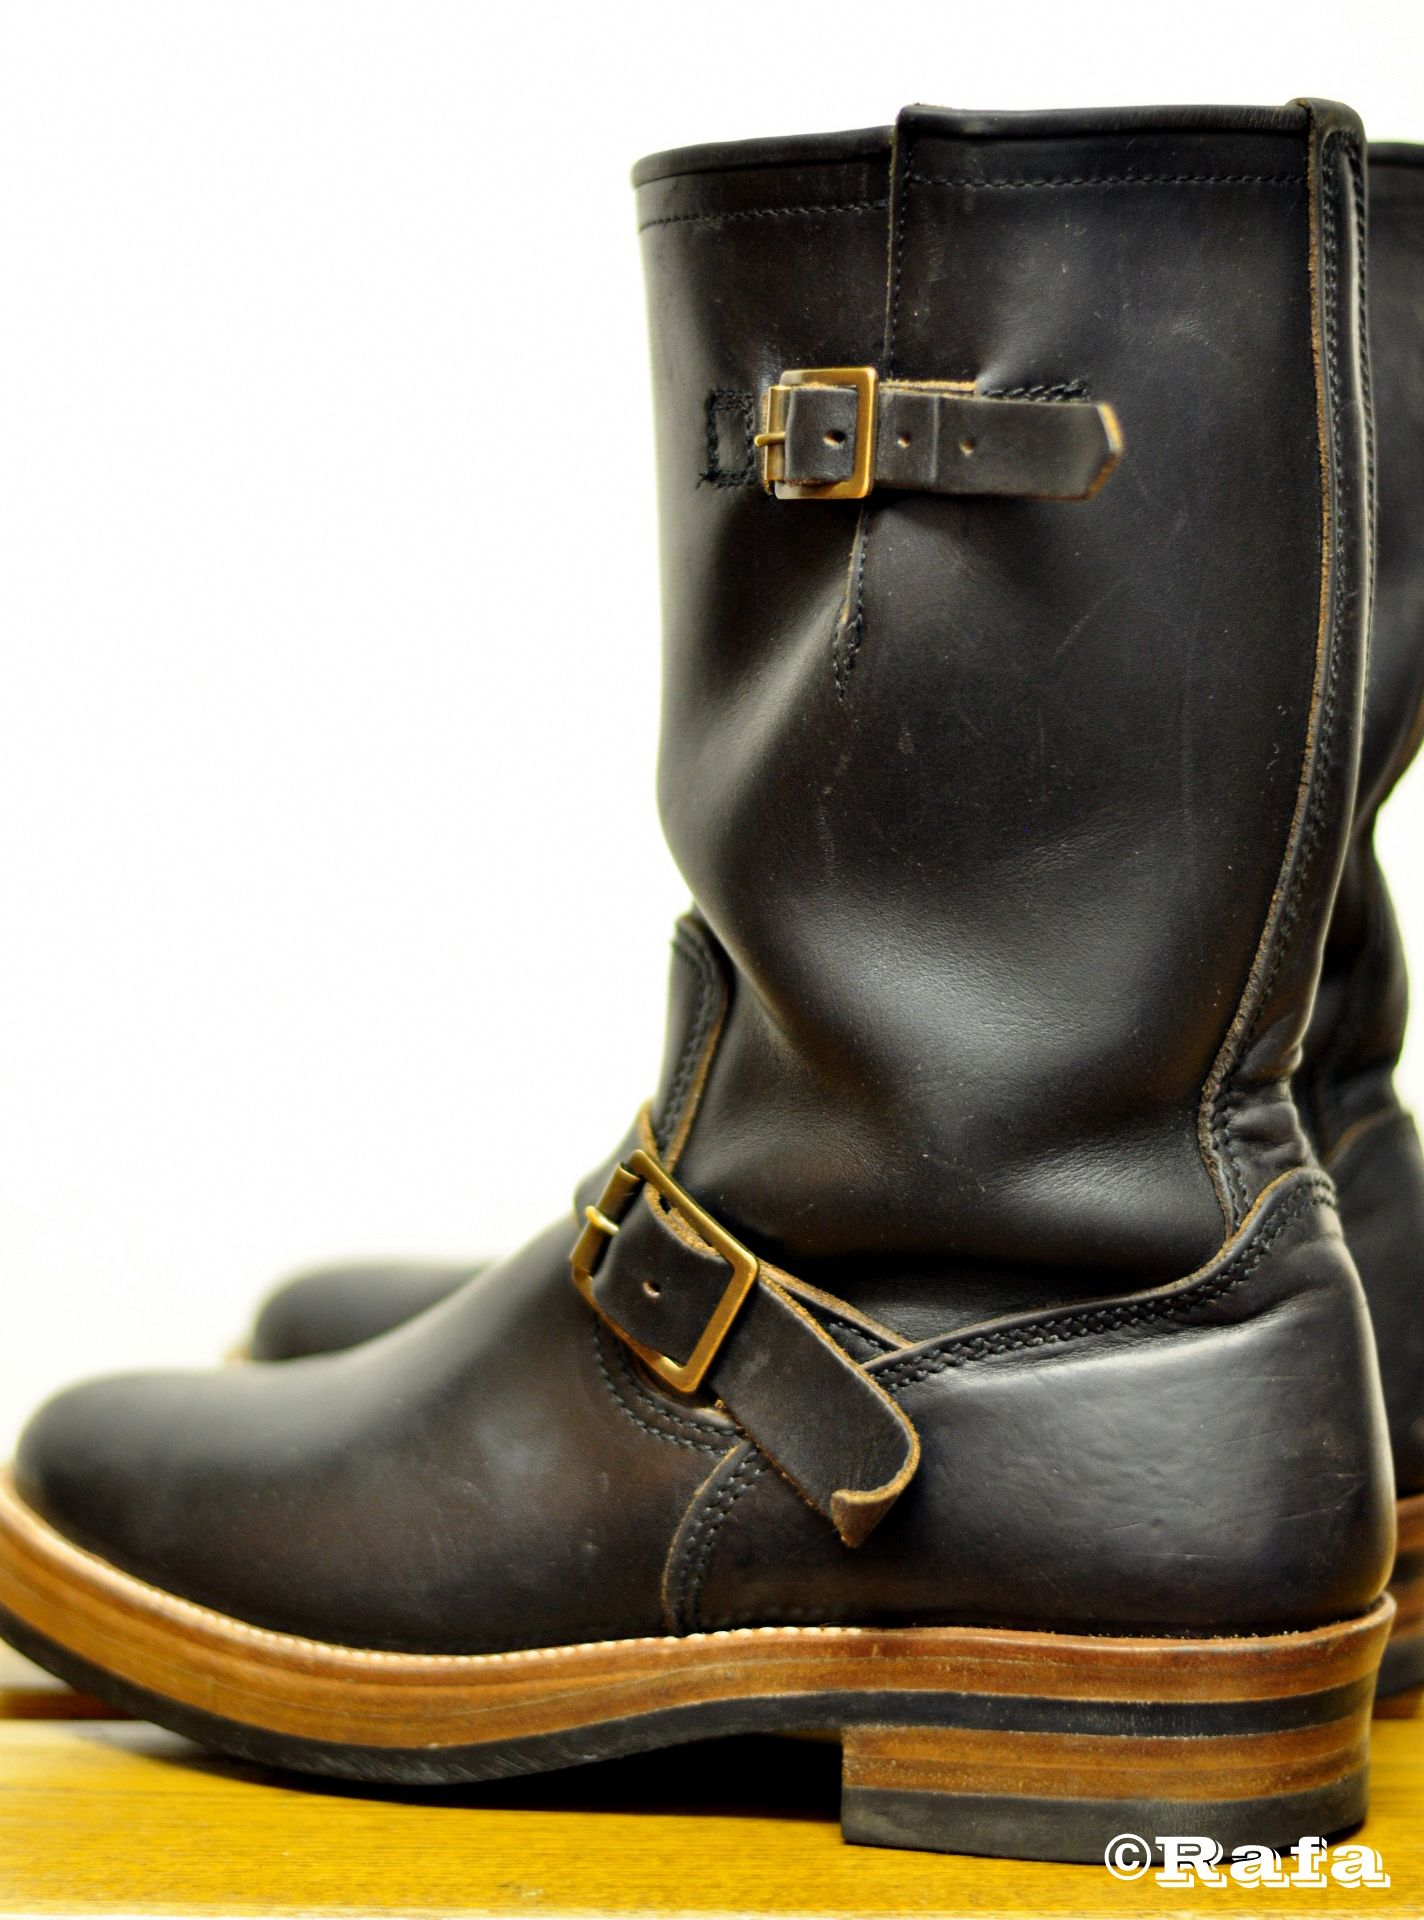 Danner Engineer Boots | Bsrjc Boots